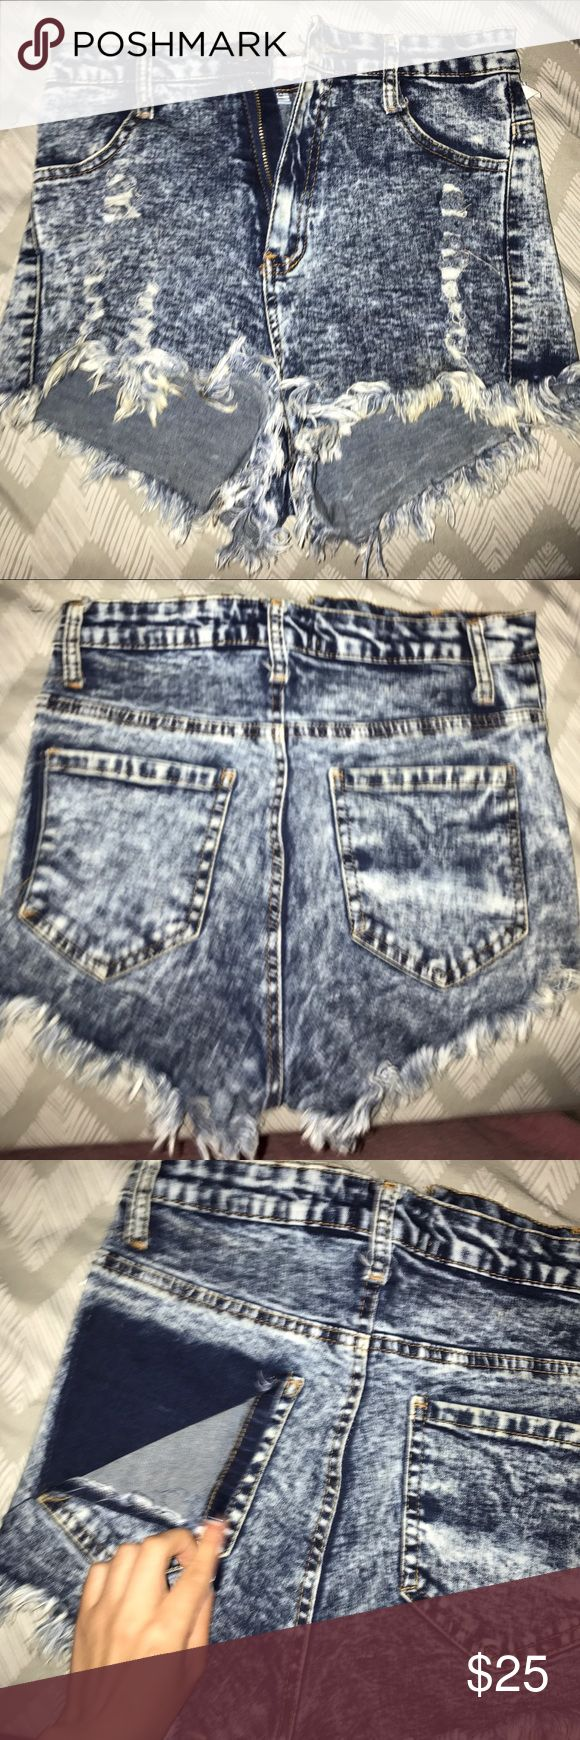 High waisted acid washed shorts Never worn, bought to wear to a music festival but ended up not wearing them. They do show your butt so if you're not into that these aren't for you Sorry!!! Size small but fit more like a medium sadly Forever 21 Shorts Jean Shorts